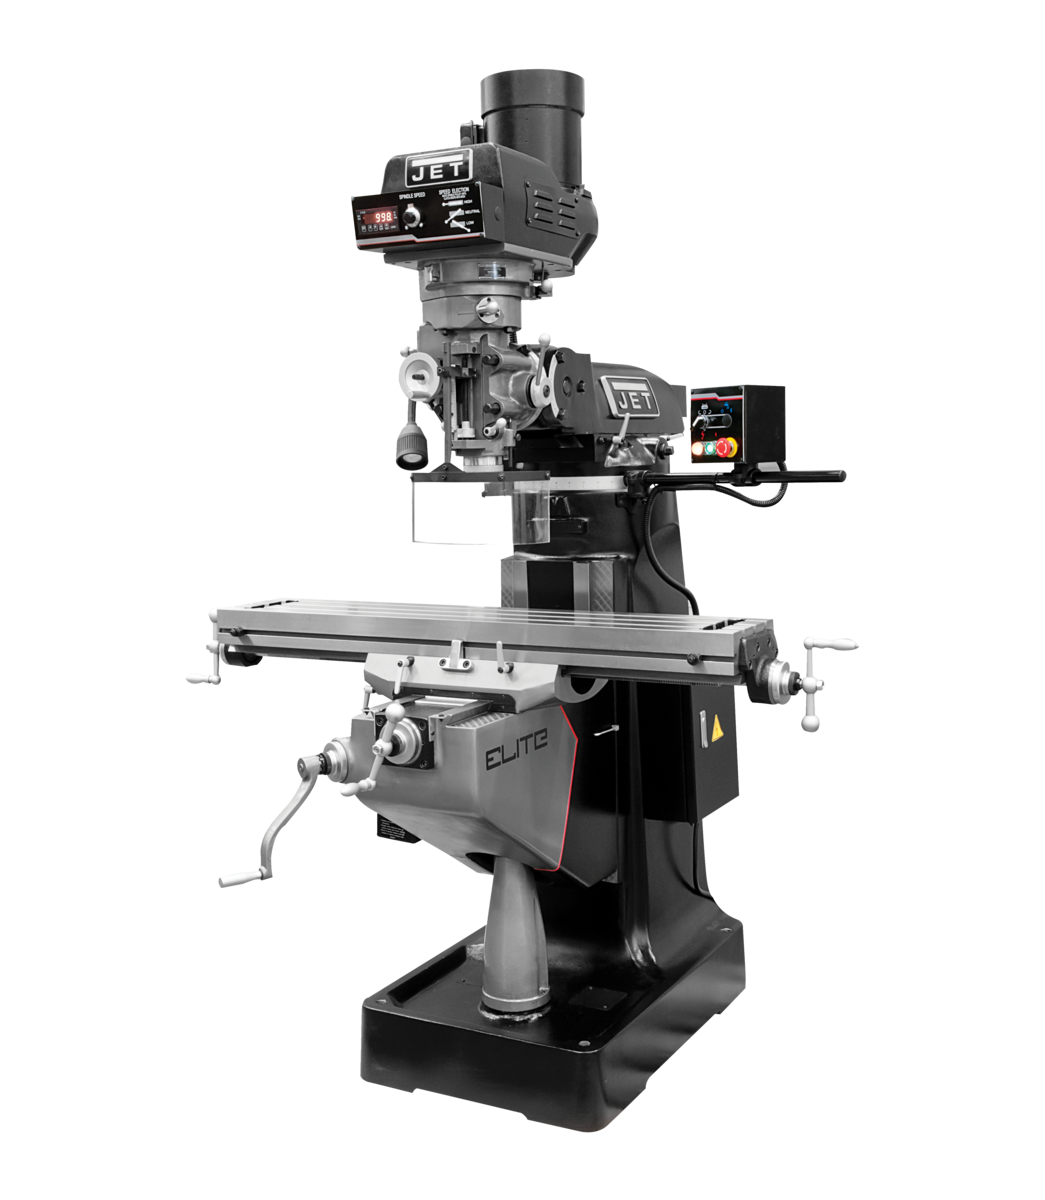 EVS-949 Mill with 2-Axis ACU-RITE 203 DRO and Servo X, Y, Z-Axis Powerfeeds